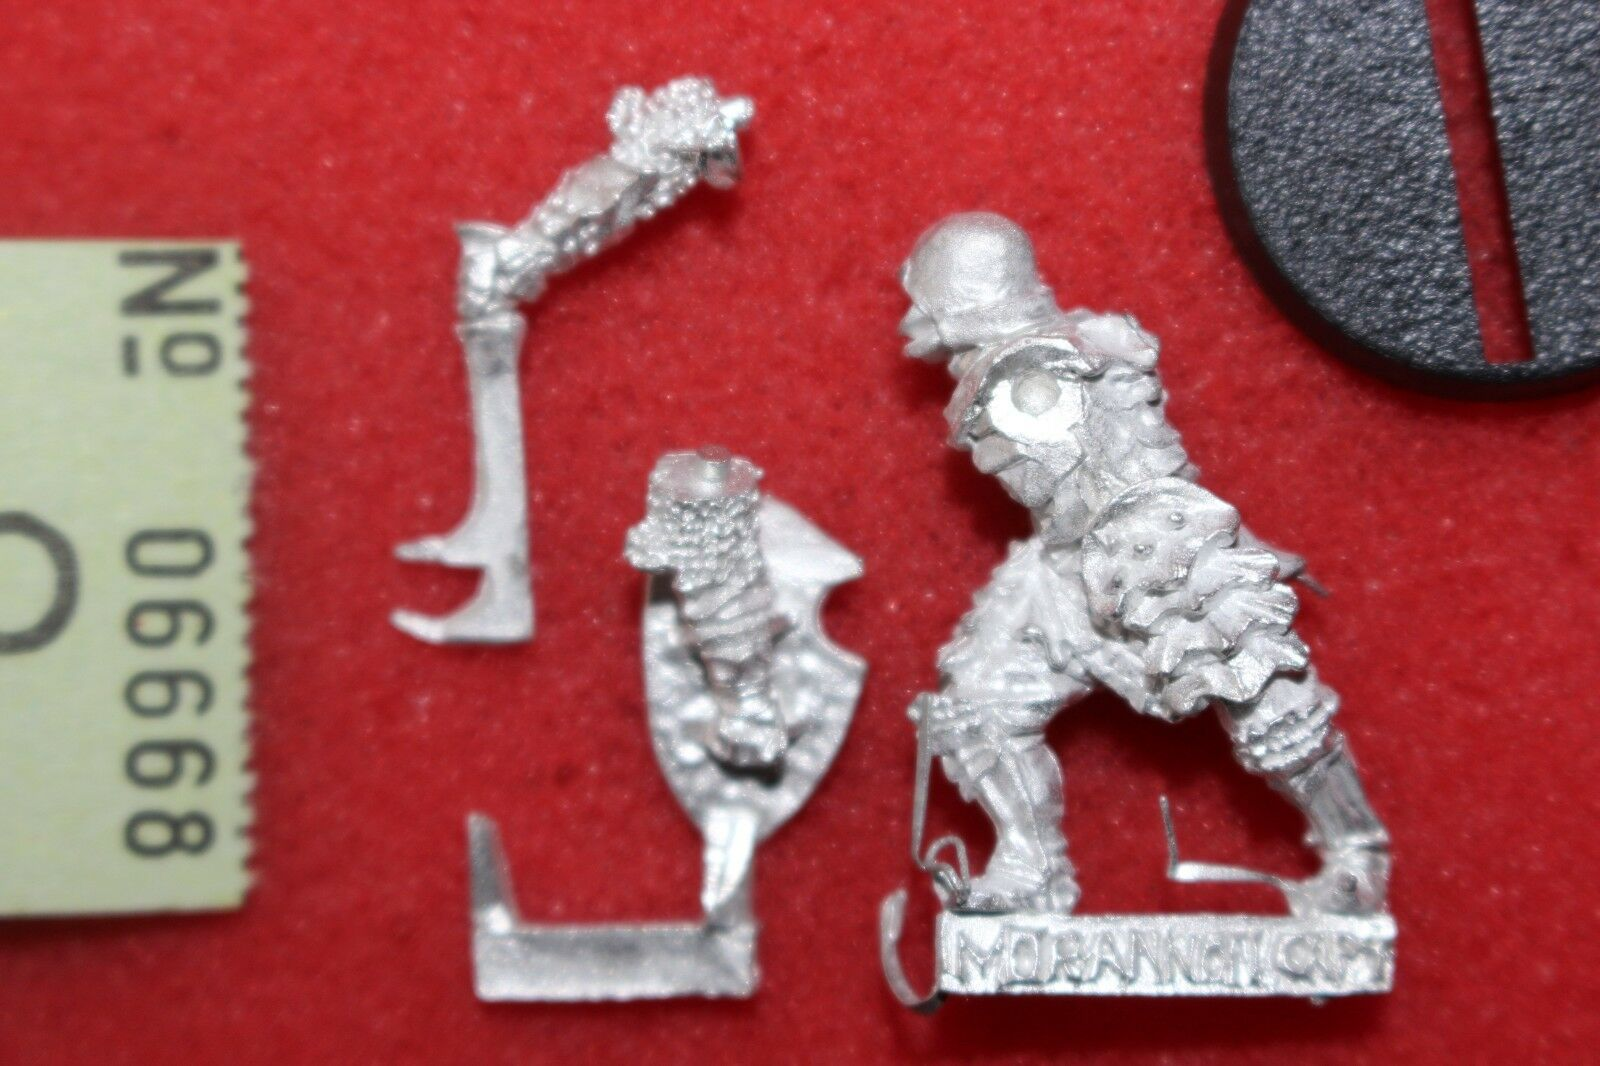 Games Workshop Lord Of The Rings Morannon Captain Orc Orcs New Metal LoTR OOP